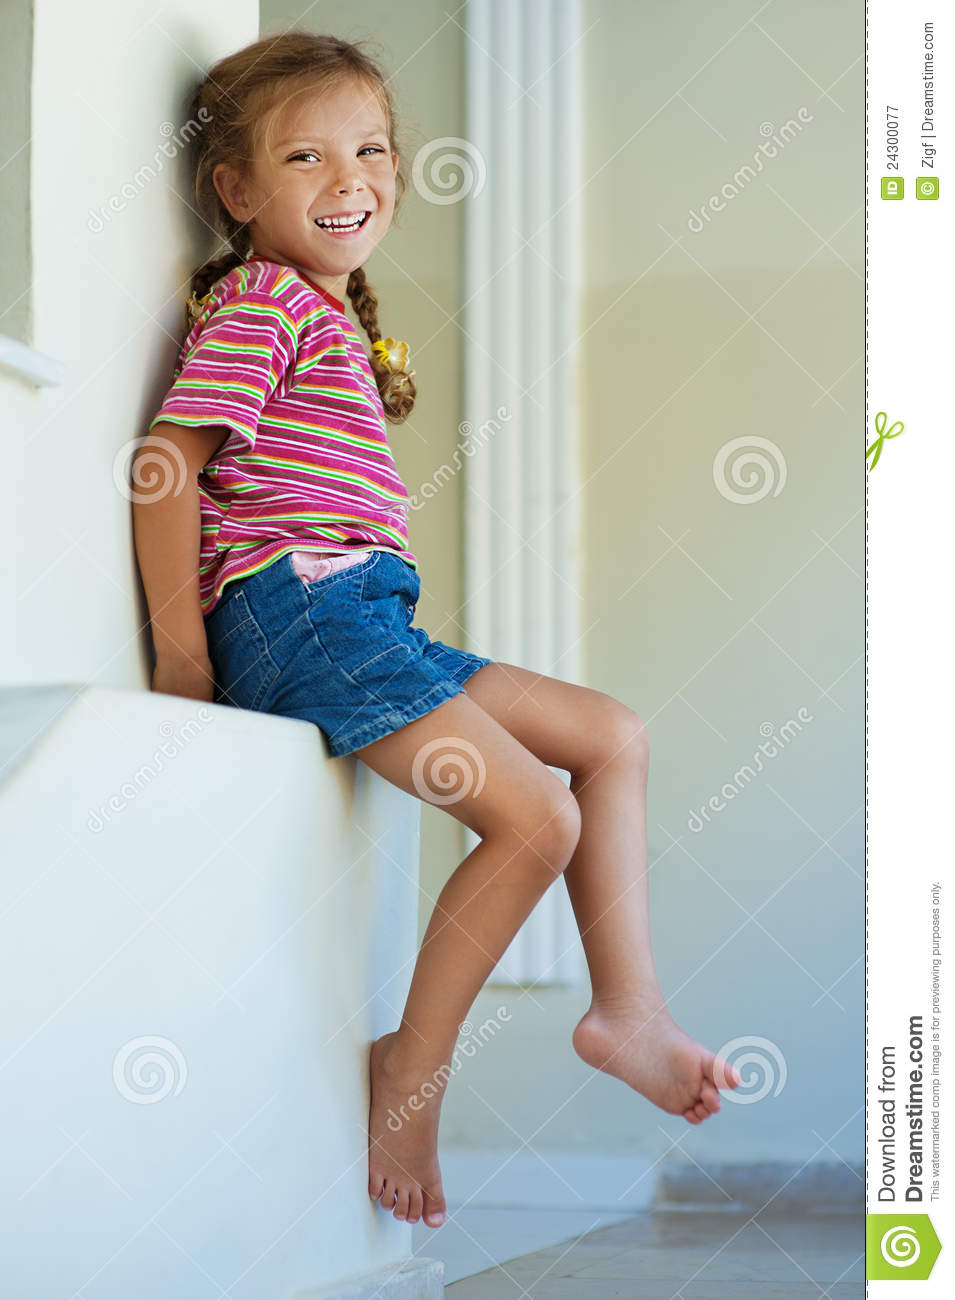 Little Girl In Shorts Sitting Stock Image - Image of head ...